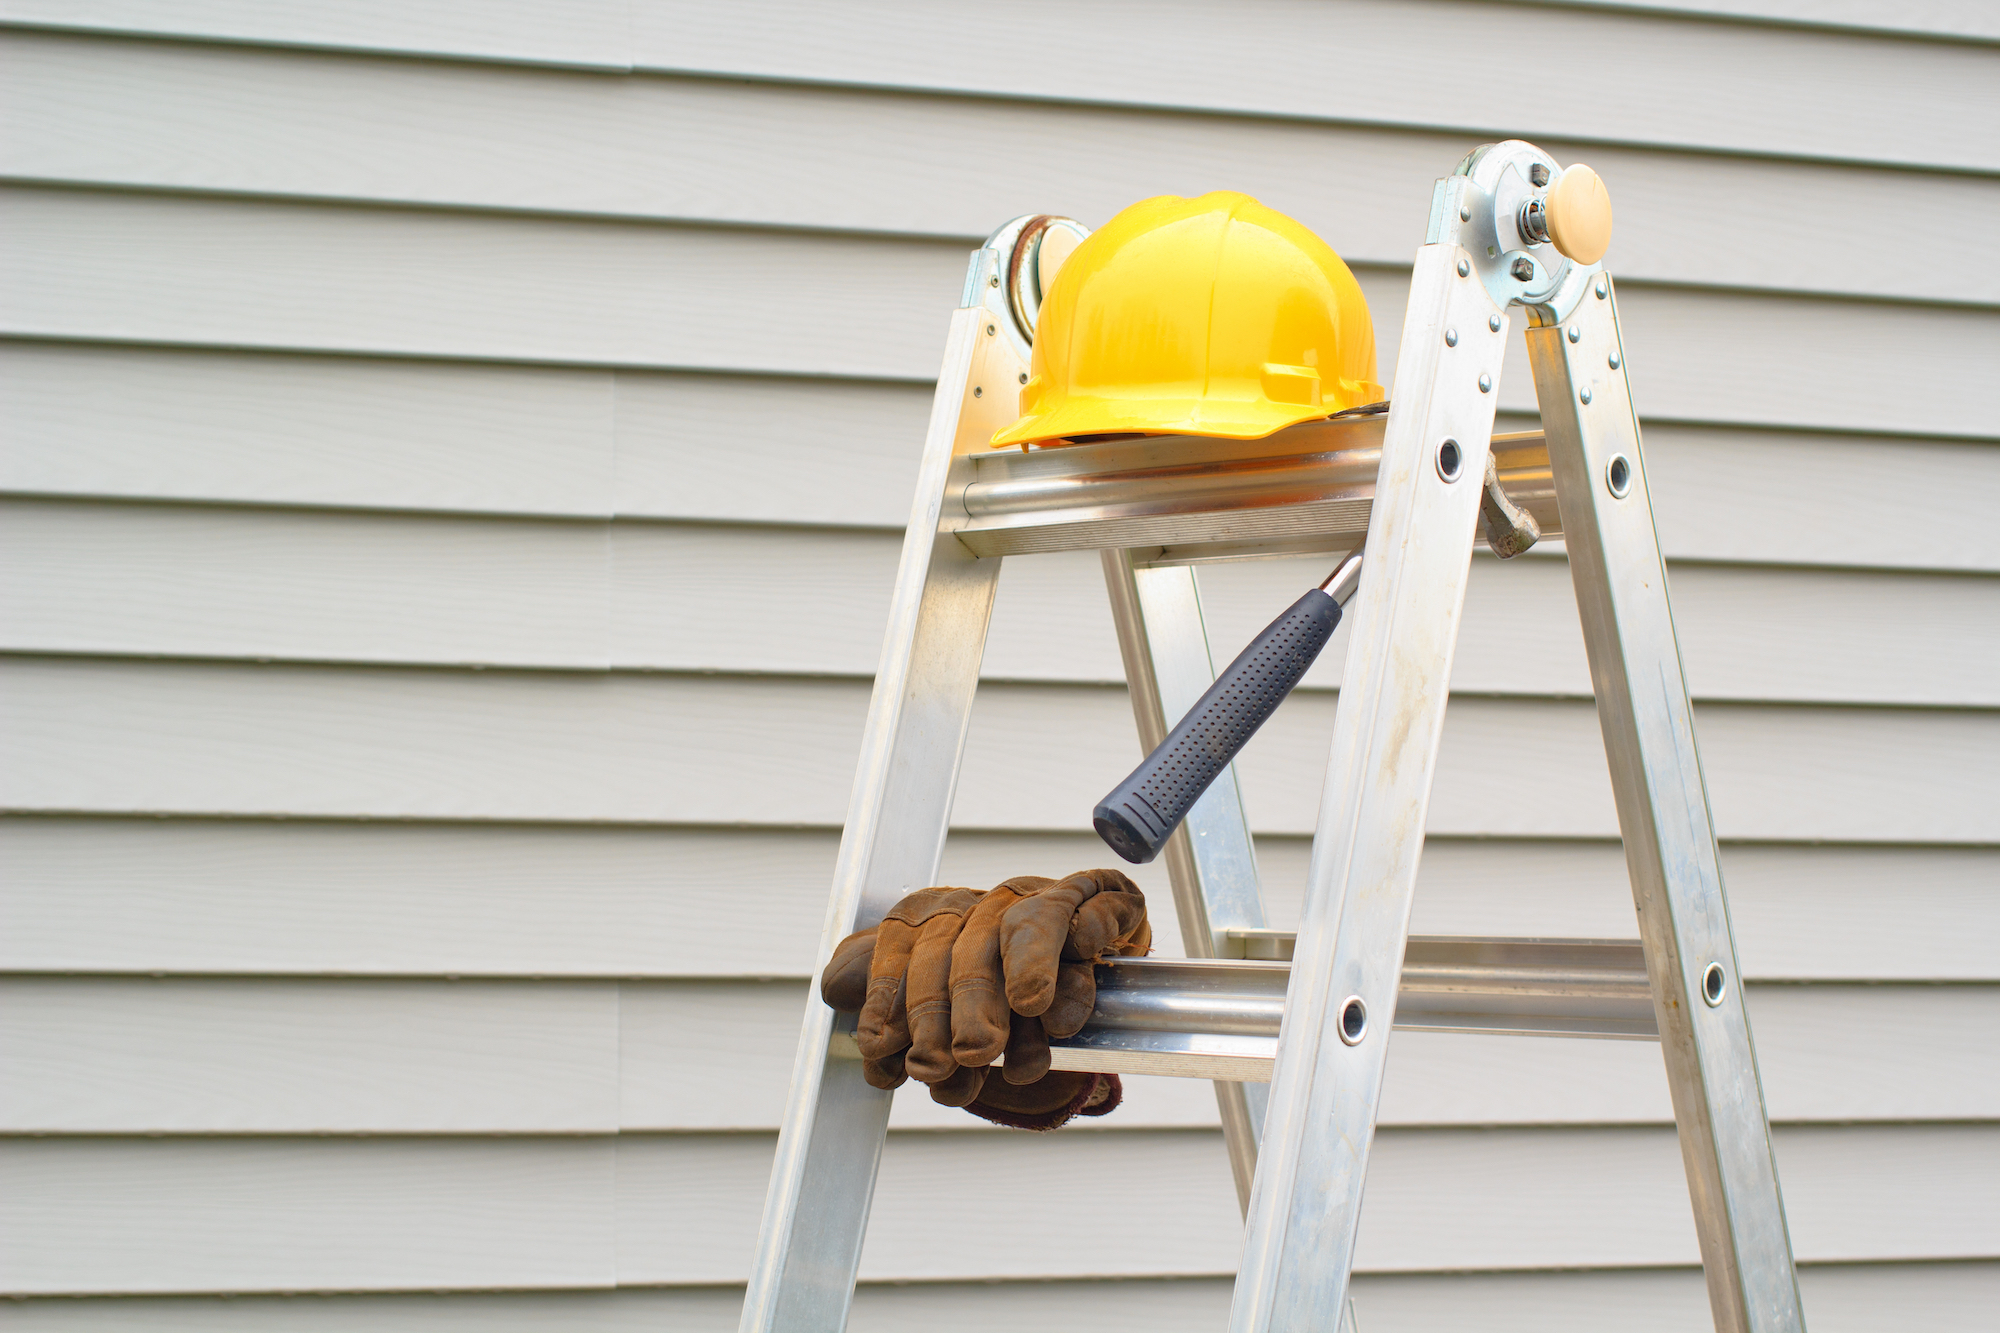 Anderson Painting residential siding service